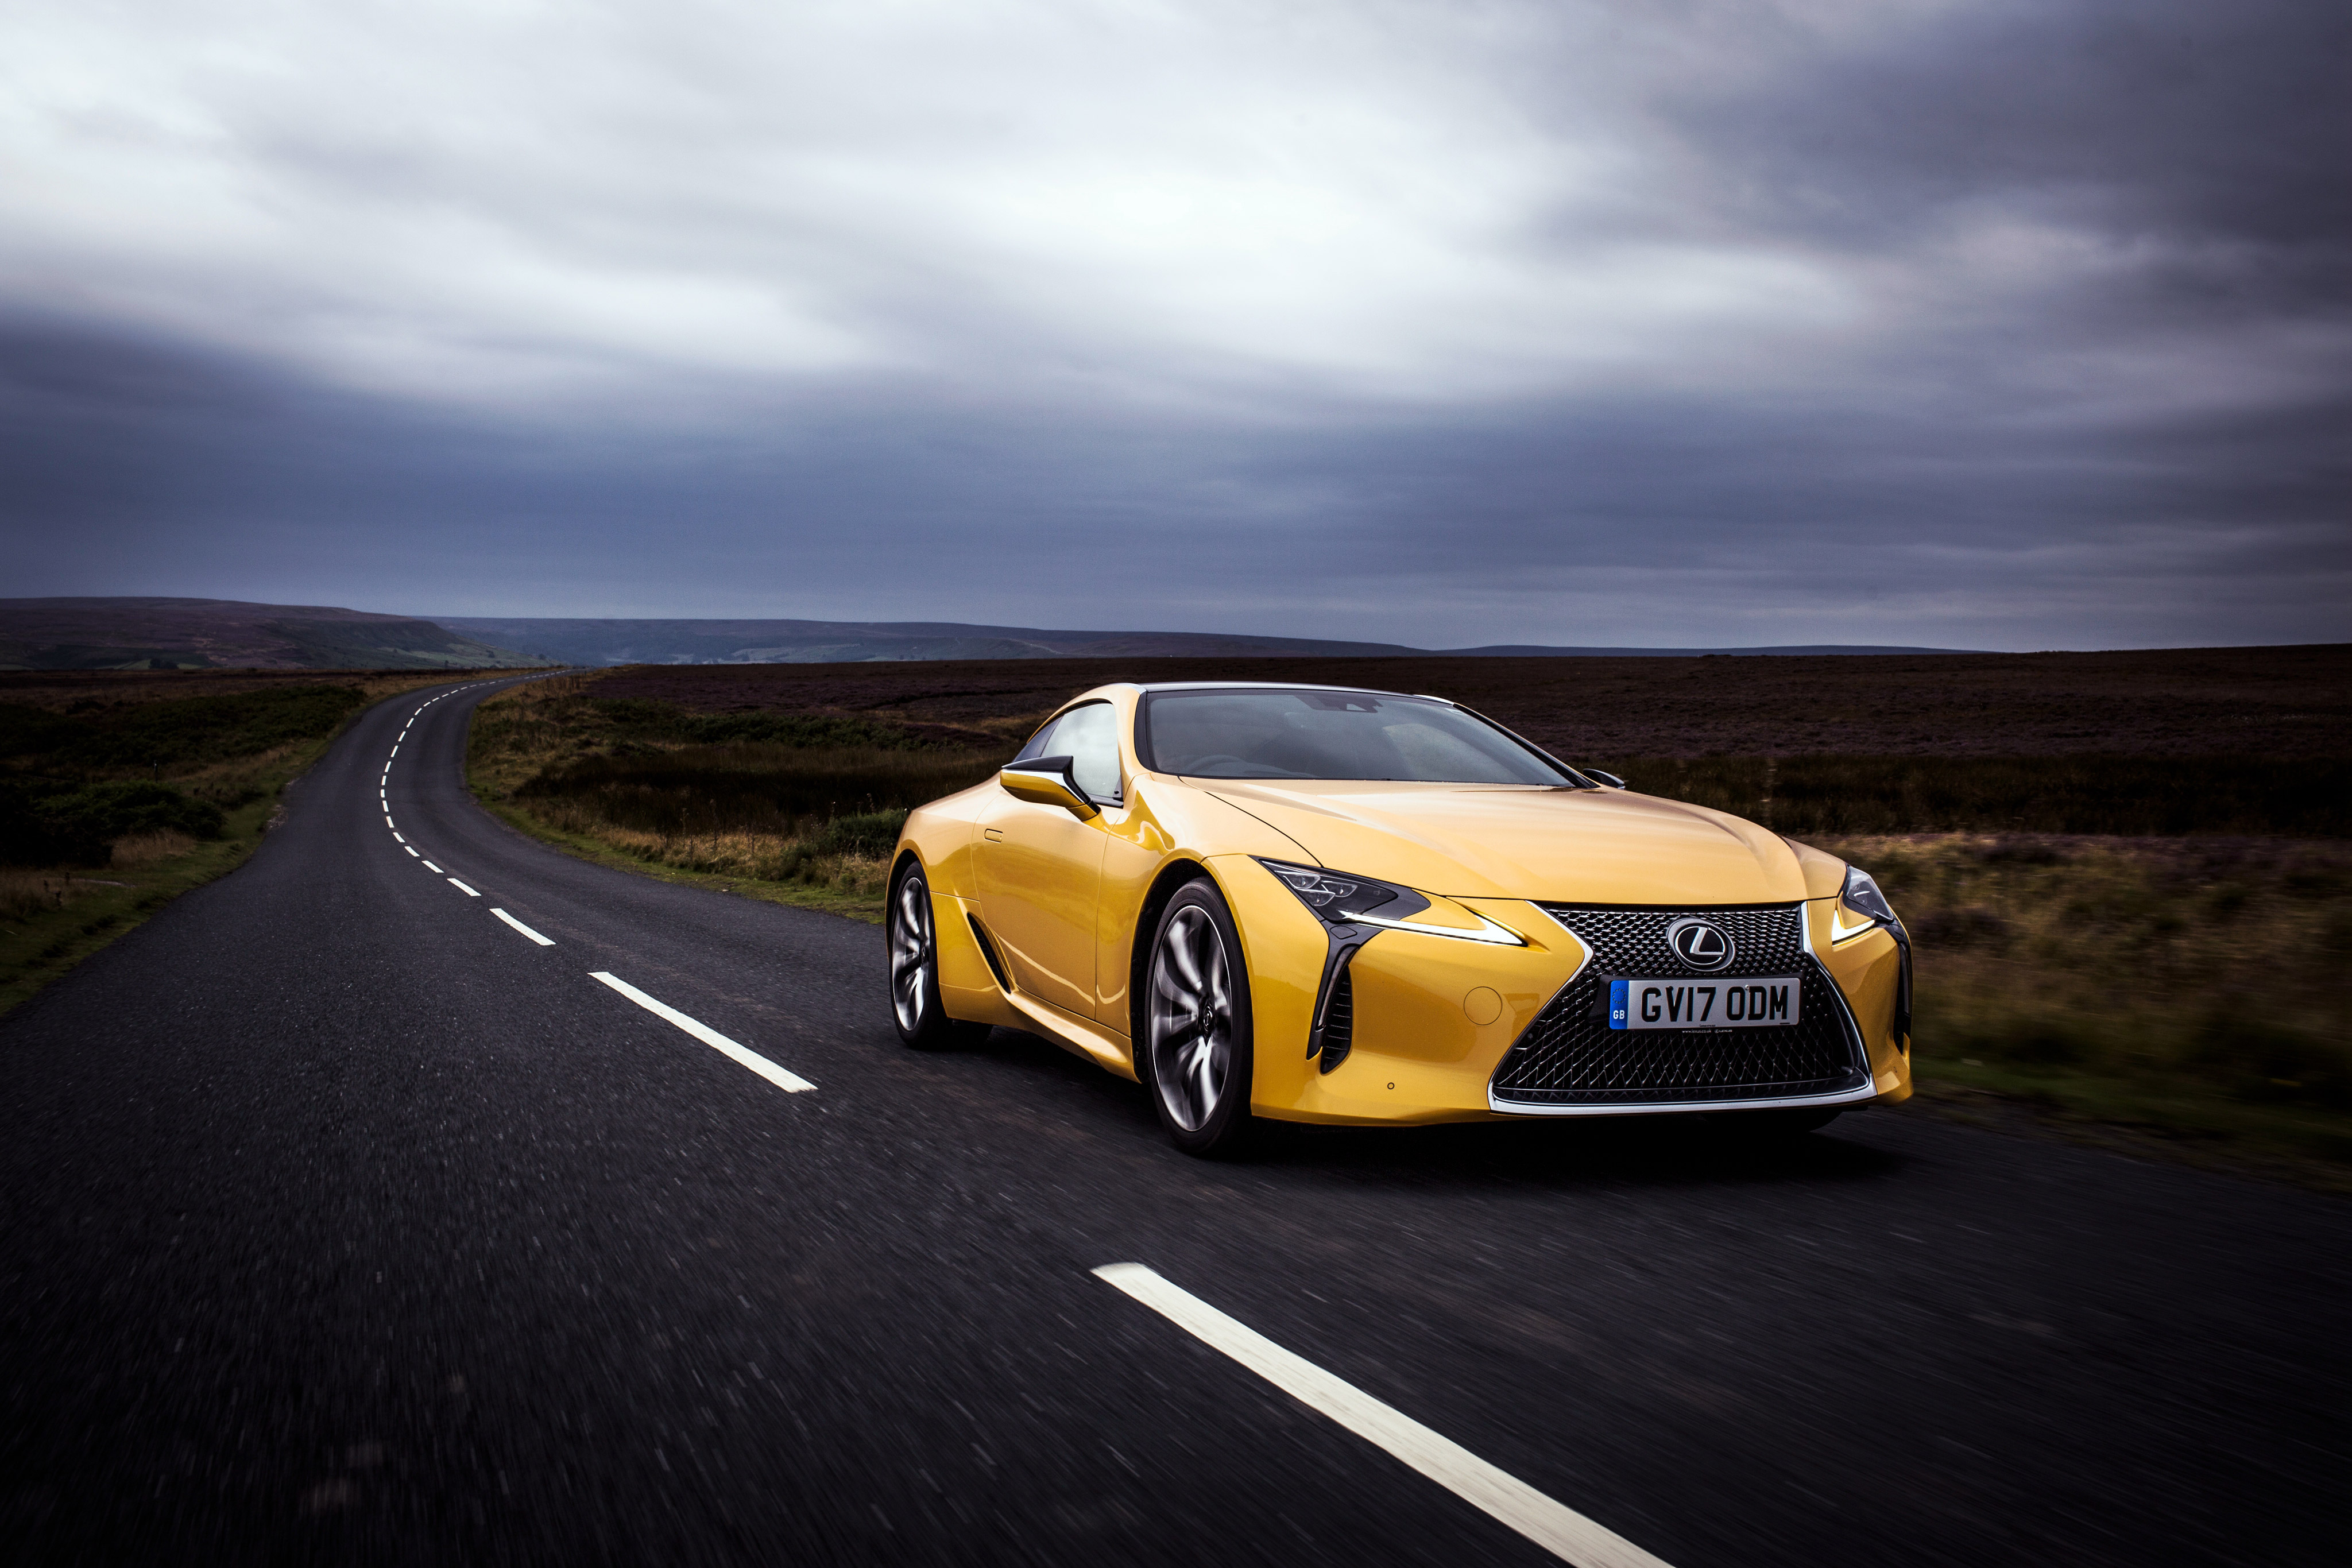 2017 Lexus LC 500 4k, HD Cars, 4k Wallpapers, Images, Backgrounds ...